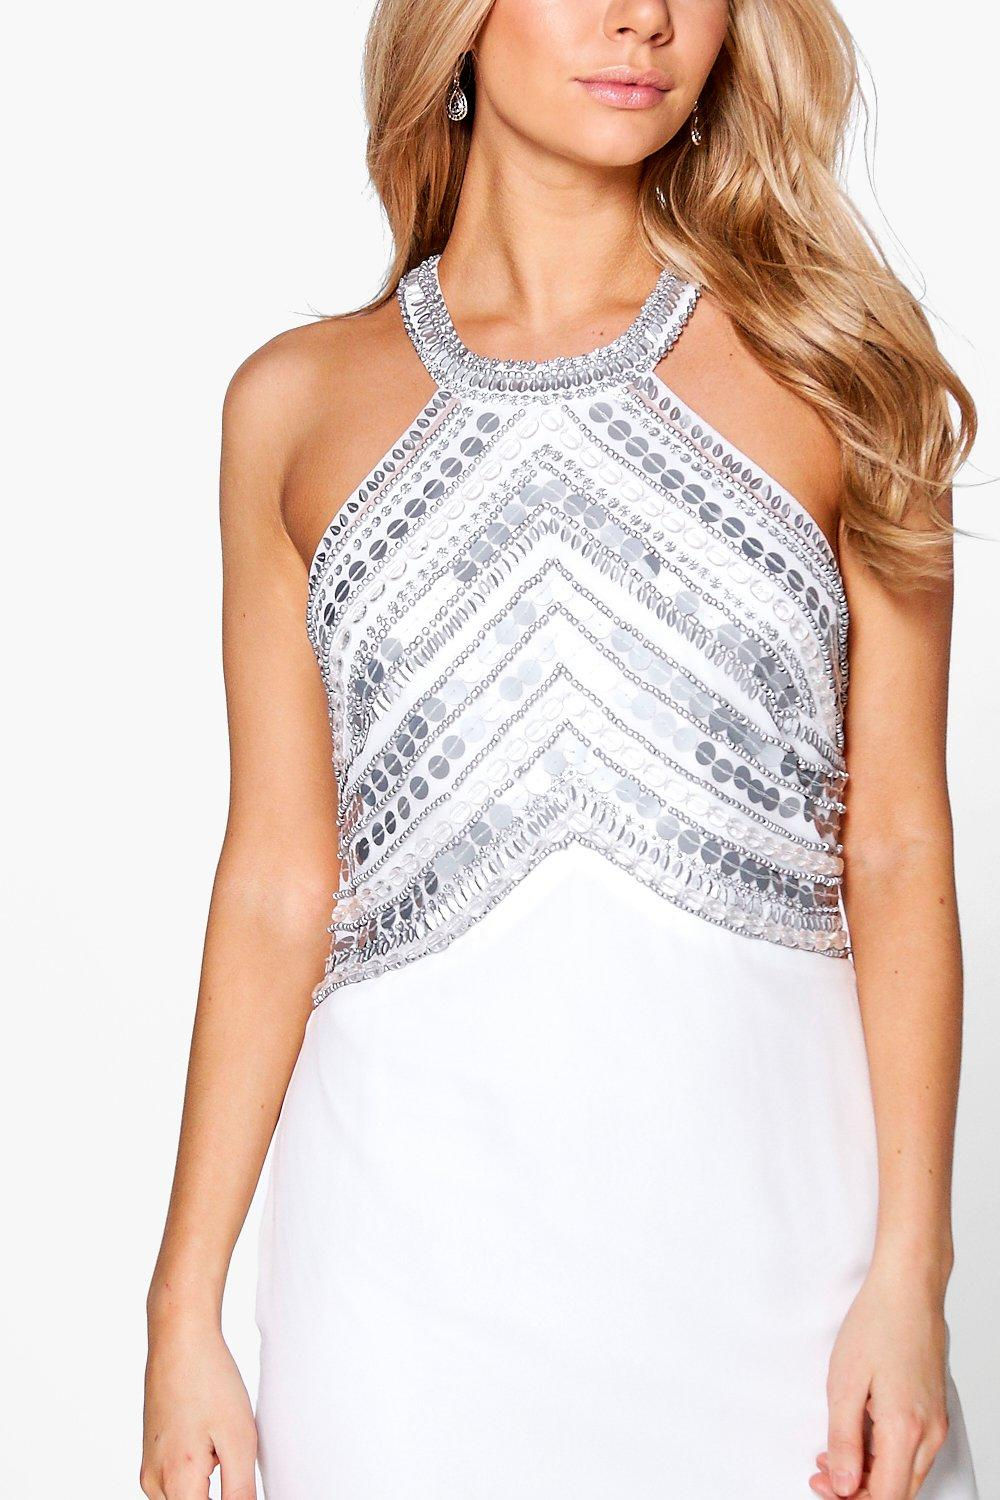 boohoo womens boutique beaded top low back maxi dress